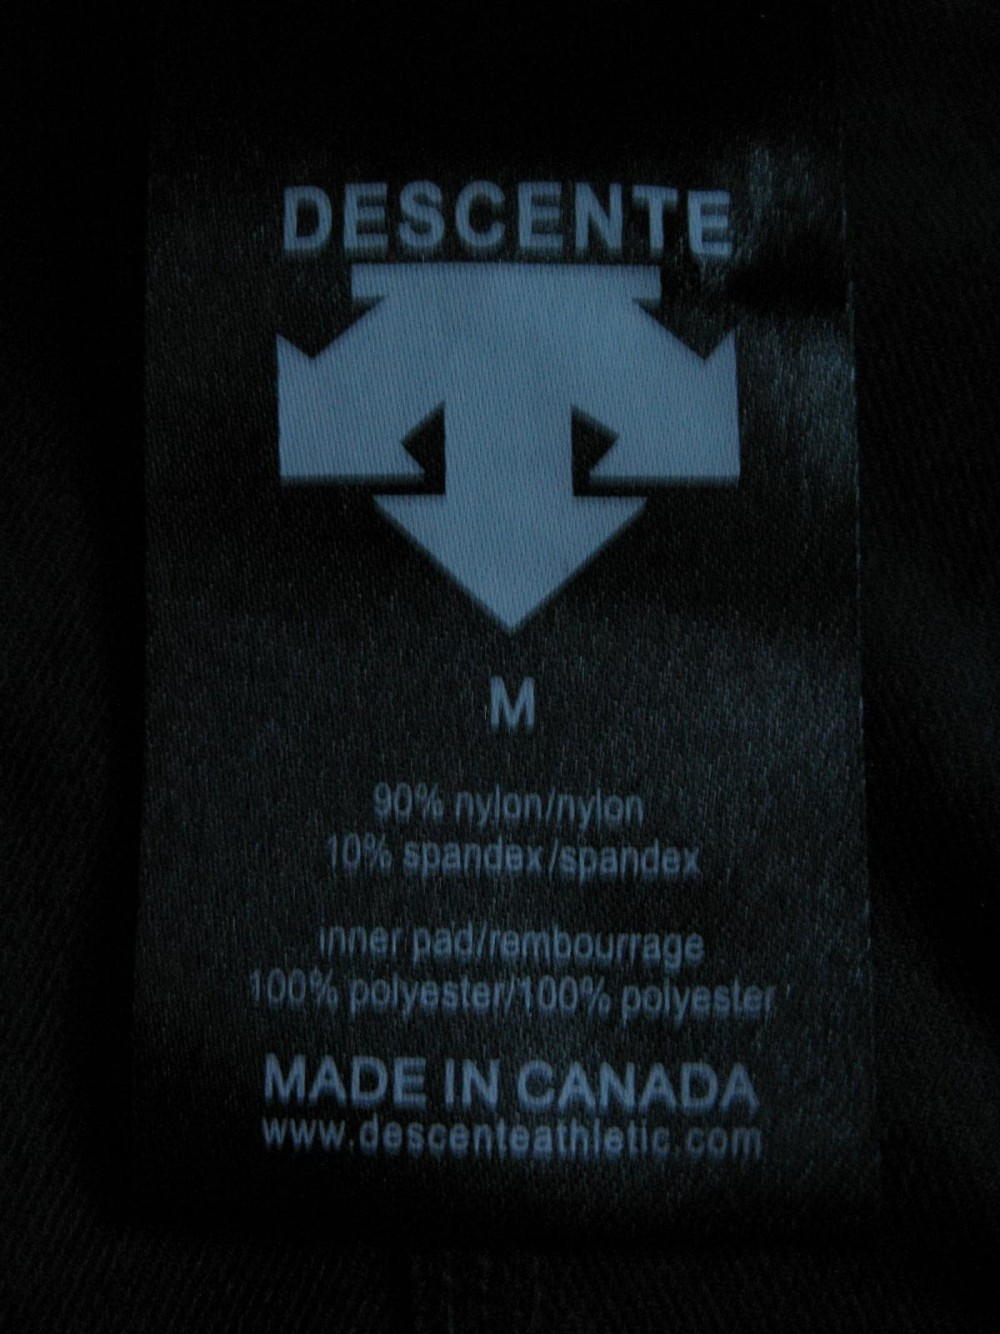 Велошорты DESCENTE bliss cycling shorts lady (размер M) - 4